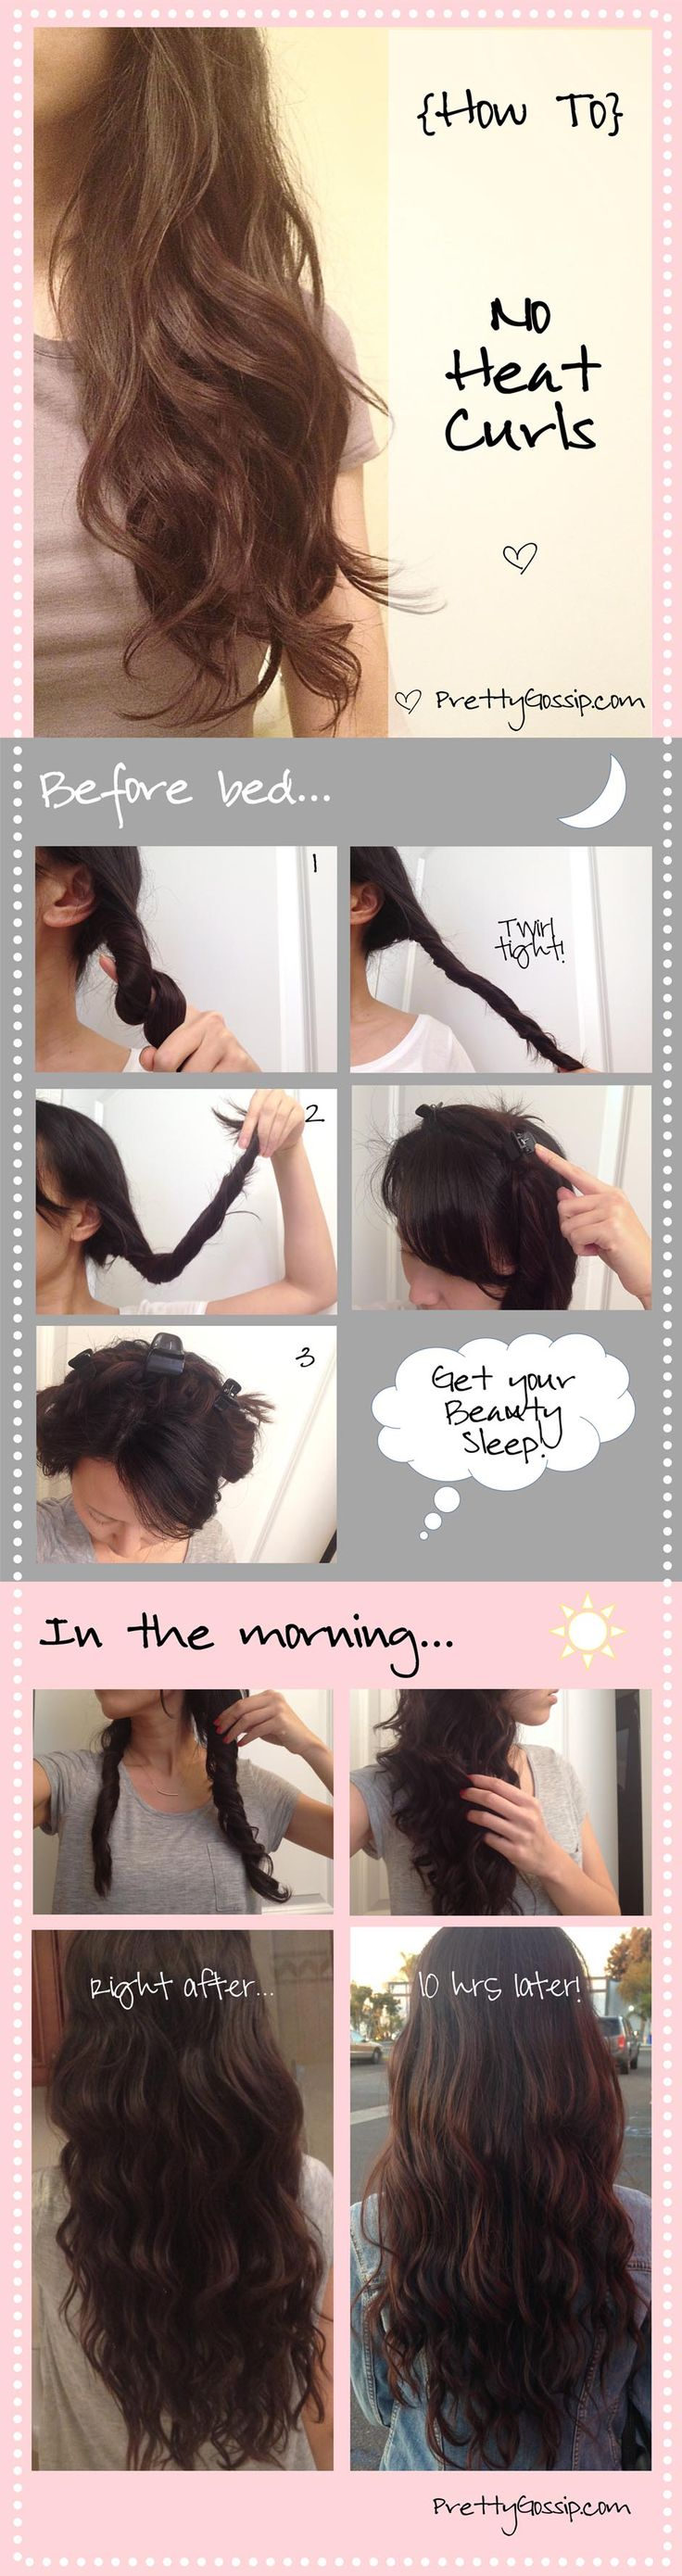 no-heat-curls.jpg 941×3,555 pixels